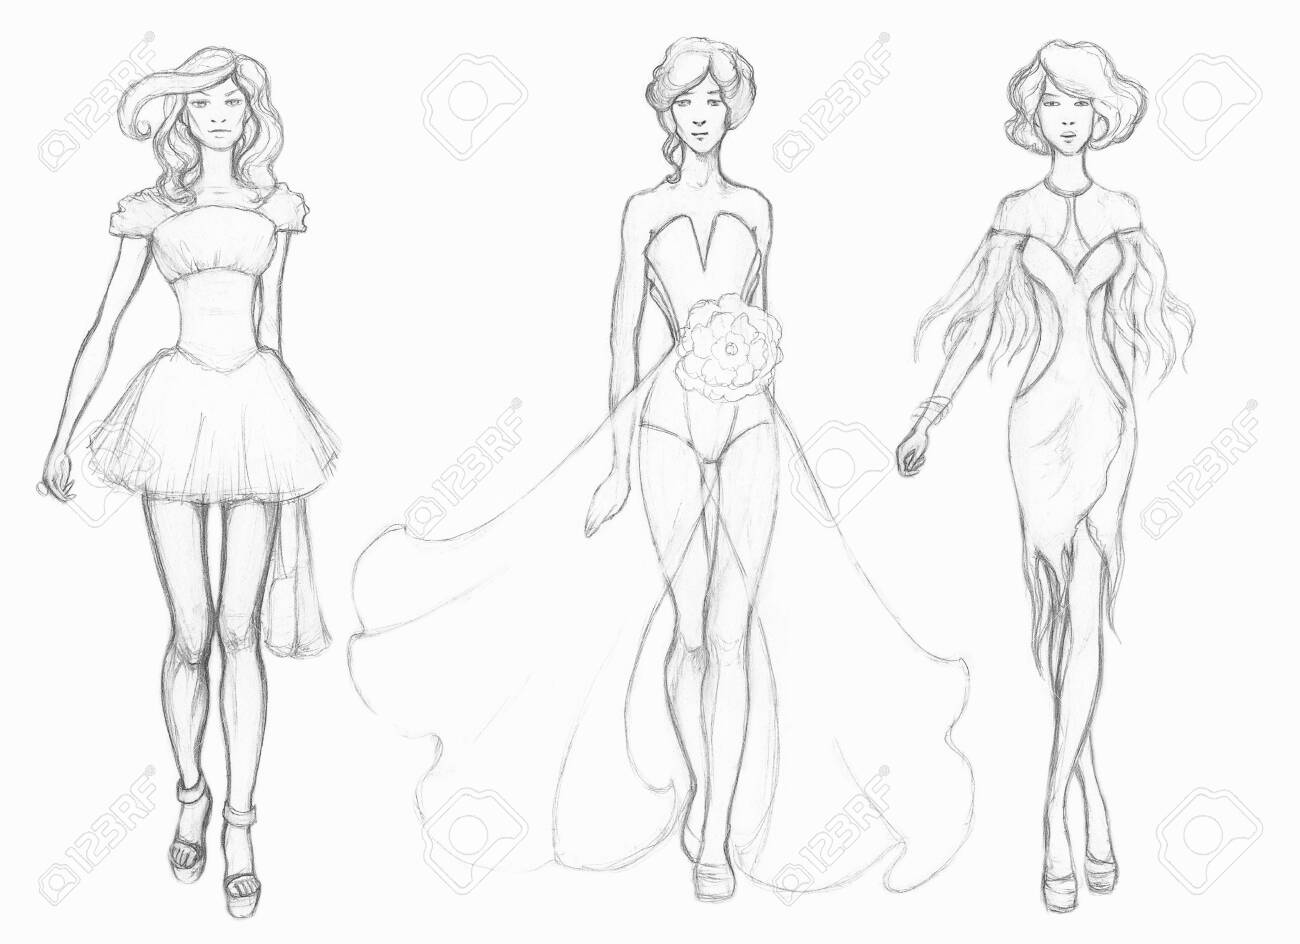 Pencil Drawing Sketch Designer Clothes Fashion Designer Stock Photo Picture And Royalty Free Image Image 128299684